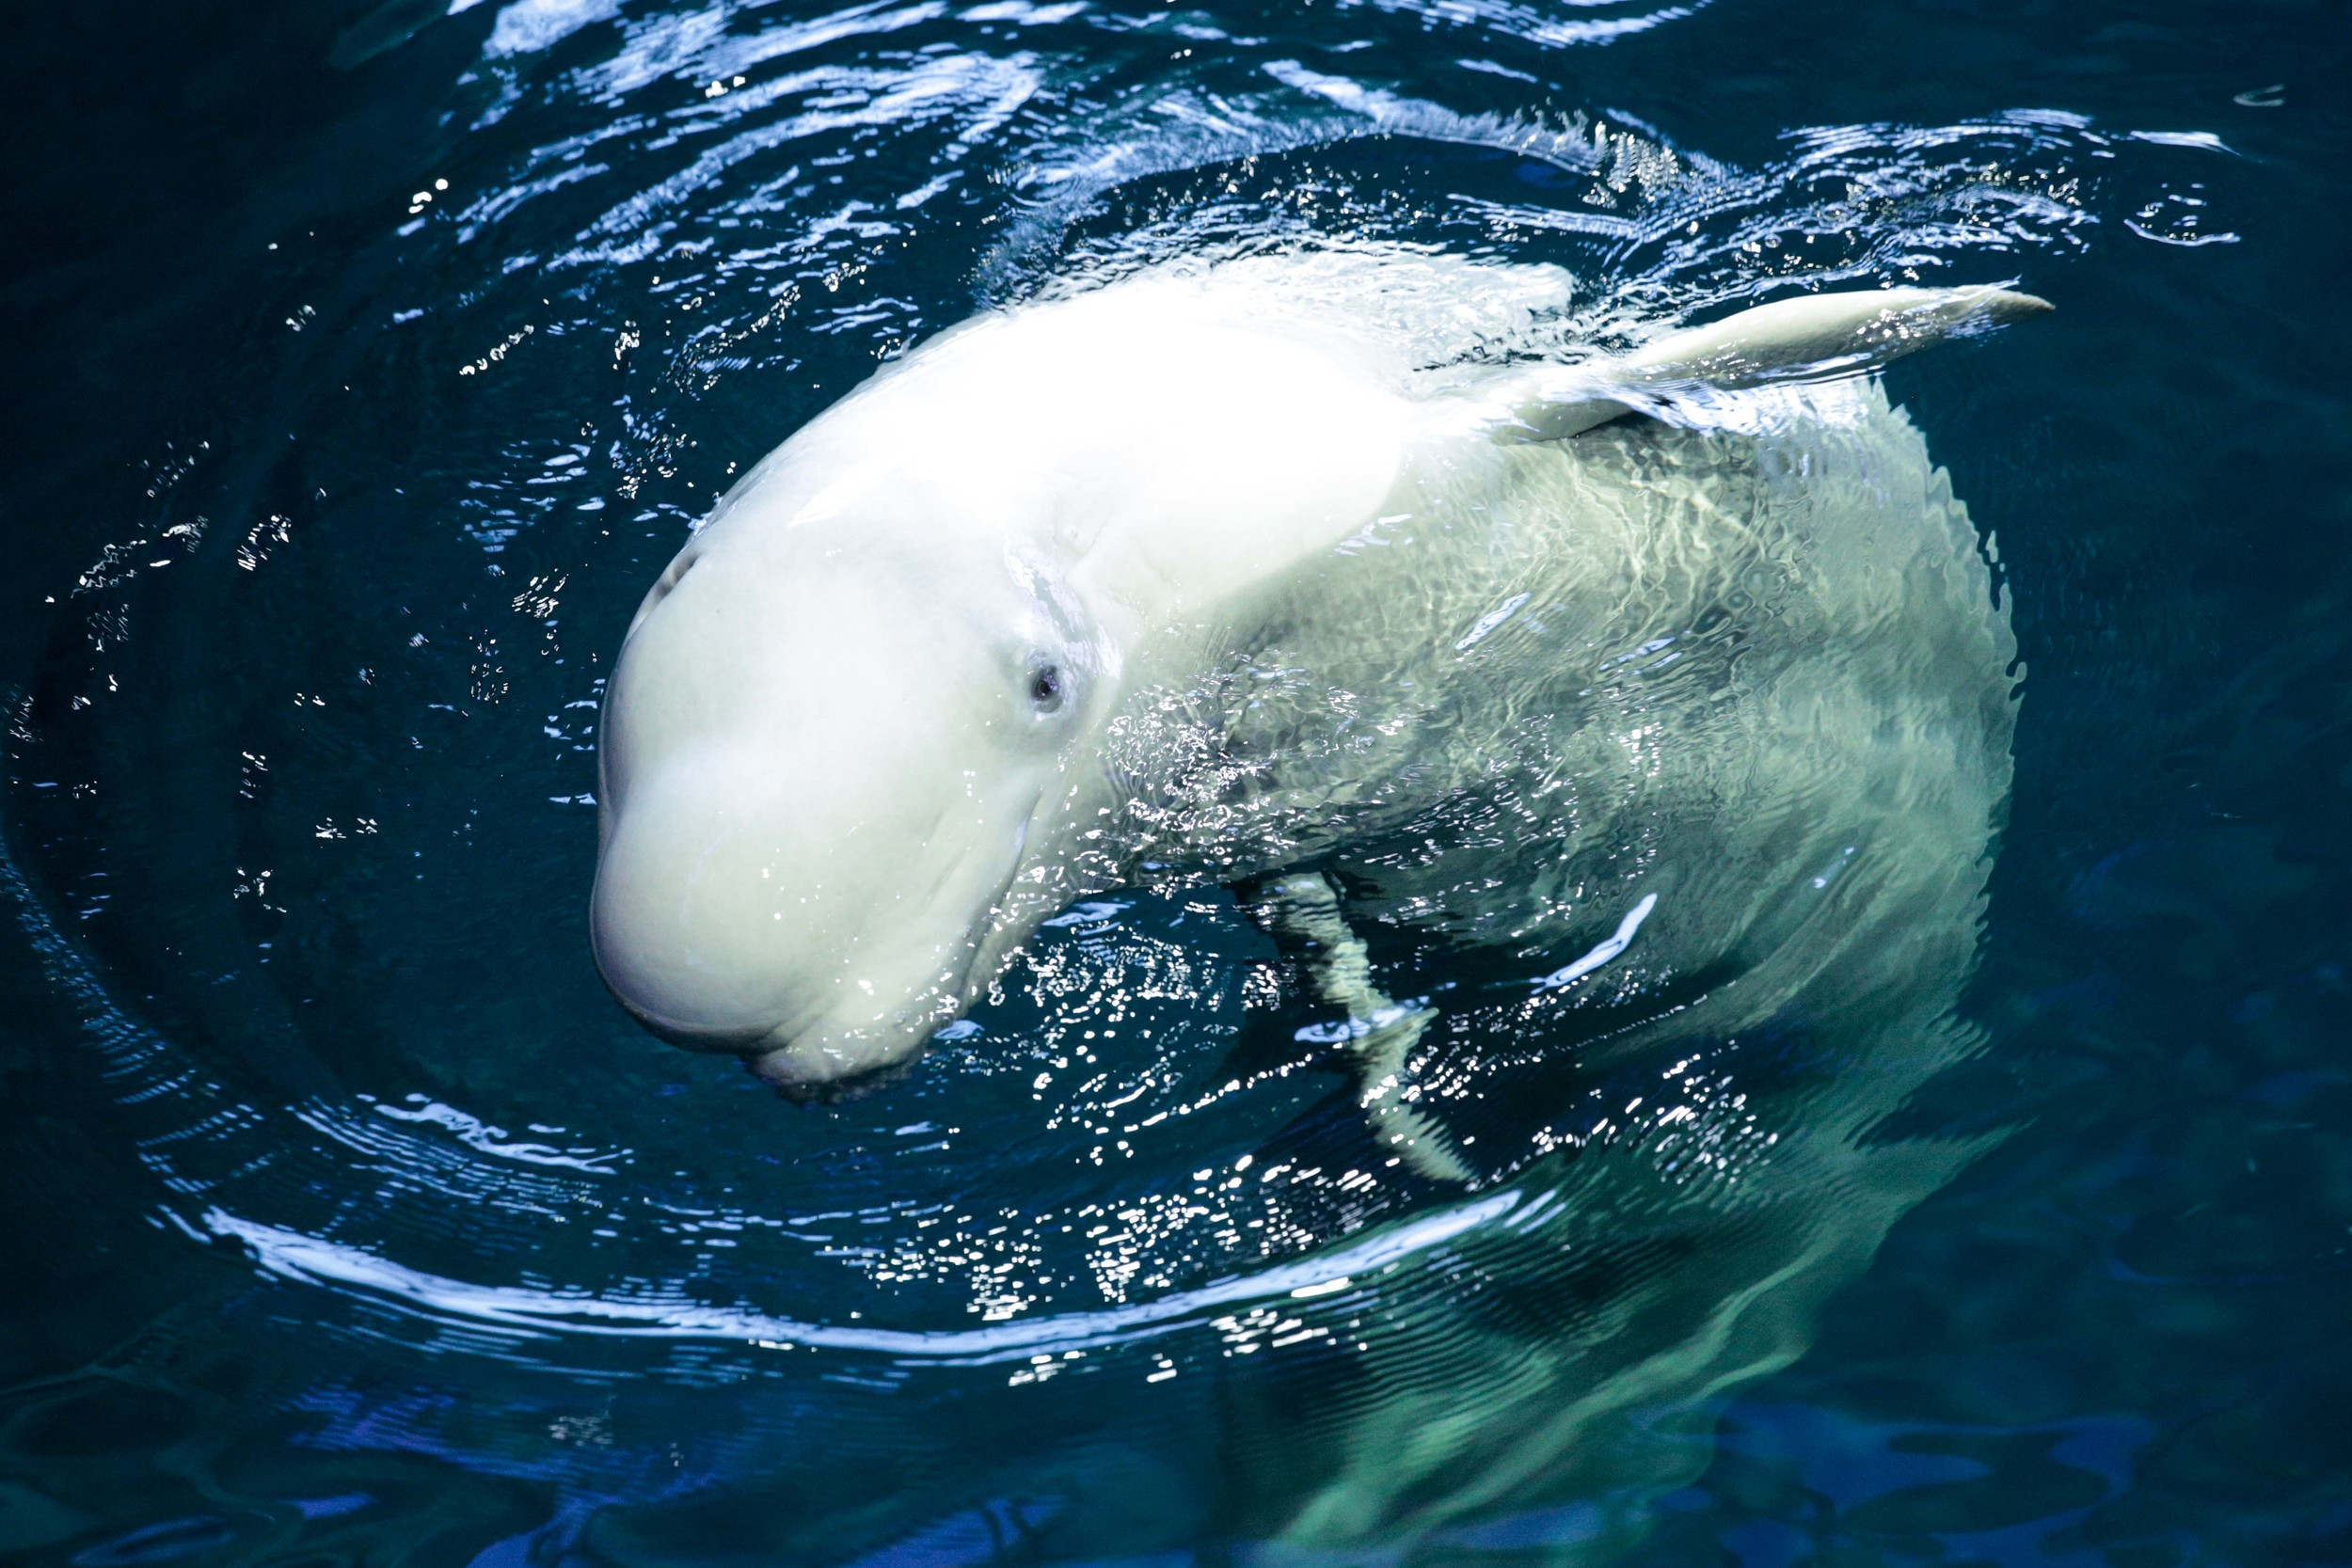 One of the Beluga whales at the Shedd Aquarium was showing of for the camera as photographed.